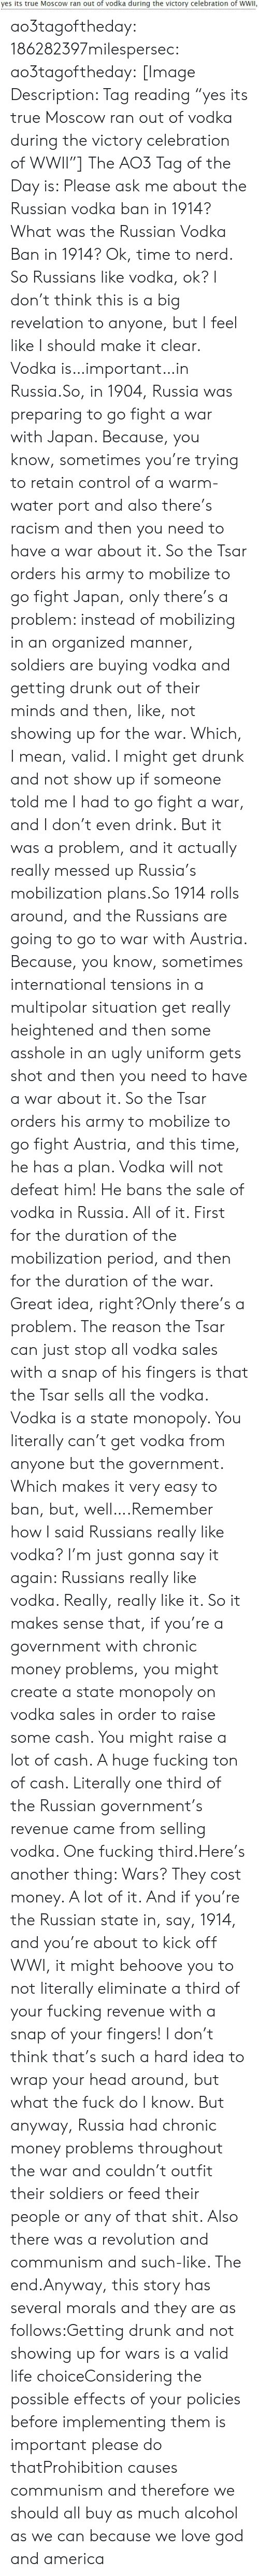 "sales: yes its true Moscow ran out of vodka during the victory celebration of WWII, ao3tagoftheday:  186282397milespersec:  ao3tagoftheday:  [Image Description: Tag reading ""yes its true Moscow ran out of vodka during the victory celebration of WWII""]  The AO3 Tag of the Day is: Please ask me about the Russian vodka ban in 1914?   What was the Russian Vodka Ban in 1914?  Ok, time to nerd. So Russians like vodka, ok? I don't think this is a big revelation to anyone, but I feel like I should make it clear. Vodka is…important…in Russia.So, in 1904, Russia was preparing to go fight a war with Japan. Because, you know, sometimes you're trying to retain control of a warm-water port and also there's racism and then you need to have a war about it. So the Tsar orders his army to mobilize to go fight Japan, only there's a problem: instead of mobilizing in an organized manner, soldiers are buying vodka and getting drunk out of their minds and then, like, not showing up for the war. Which, I mean, valid. I might get drunk and not show up if someone told me I had to go fight a war, and I don't even drink. But it was a problem, and it actually really messed up Russia's mobilization plans.So 1914 rolls around, and the Russians are going to go to war with Austria. Because, you know, sometimes international tensions in a multipolar situation get really heightened and then some asshole in an ugly uniform gets shot and then you need to have a war about it. So the Tsar orders his army to mobilize to go fight Austria, and this time, he has a plan. Vodka will not defeat him! He bans the sale of vodka in Russia. All of it. First for the duration of the mobilization period, and then for the duration of the war. Great idea, right?Only there's a problem. The reason the Tsar can just stop all vodka sales with a snap of his fingers is that the Tsar sells all the vodka. Vodka is a state monopoly. You literally can't get vodka from anyone but the government. Which makes it very easy to ban, but, well….Remember how I said Russians really like vodka? I'm just gonna say it again: Russians really like vodka. Really, really like it. So it makes sense that, if you're a government with chronic money problems, you might create a state monopoly on vodka sales in order to raise some cash. You might raise a lot of cash. A huge fucking ton of cash. Literally one third of the Russian government's revenue came from selling vodka. One fucking third.Here's another thing: Wars? They cost money. A lot of it. And if you're the Russian state in, say, 1914, and you're about to kick off WWI, it might behoove you to not literally eliminate a third of your fucking revenue with a snap of your fingers! I don't think that's such a hard idea to wrap your head around, but what the fuck do I know. But anyway, Russia had chronic money problems throughout the war and couldn't outfit their soldiers or feed their people or any of that shit. Also there was a revolution and communism and such-like. The end.Anyway, this story has several morals and they are as follows:Getting drunk and not showing up for wars is a valid life choiceConsidering the possible effects of your policies before implementing them is important please do thatProhibition causes communism and therefore we should all buy as much alcohol as we can because we love god and america"